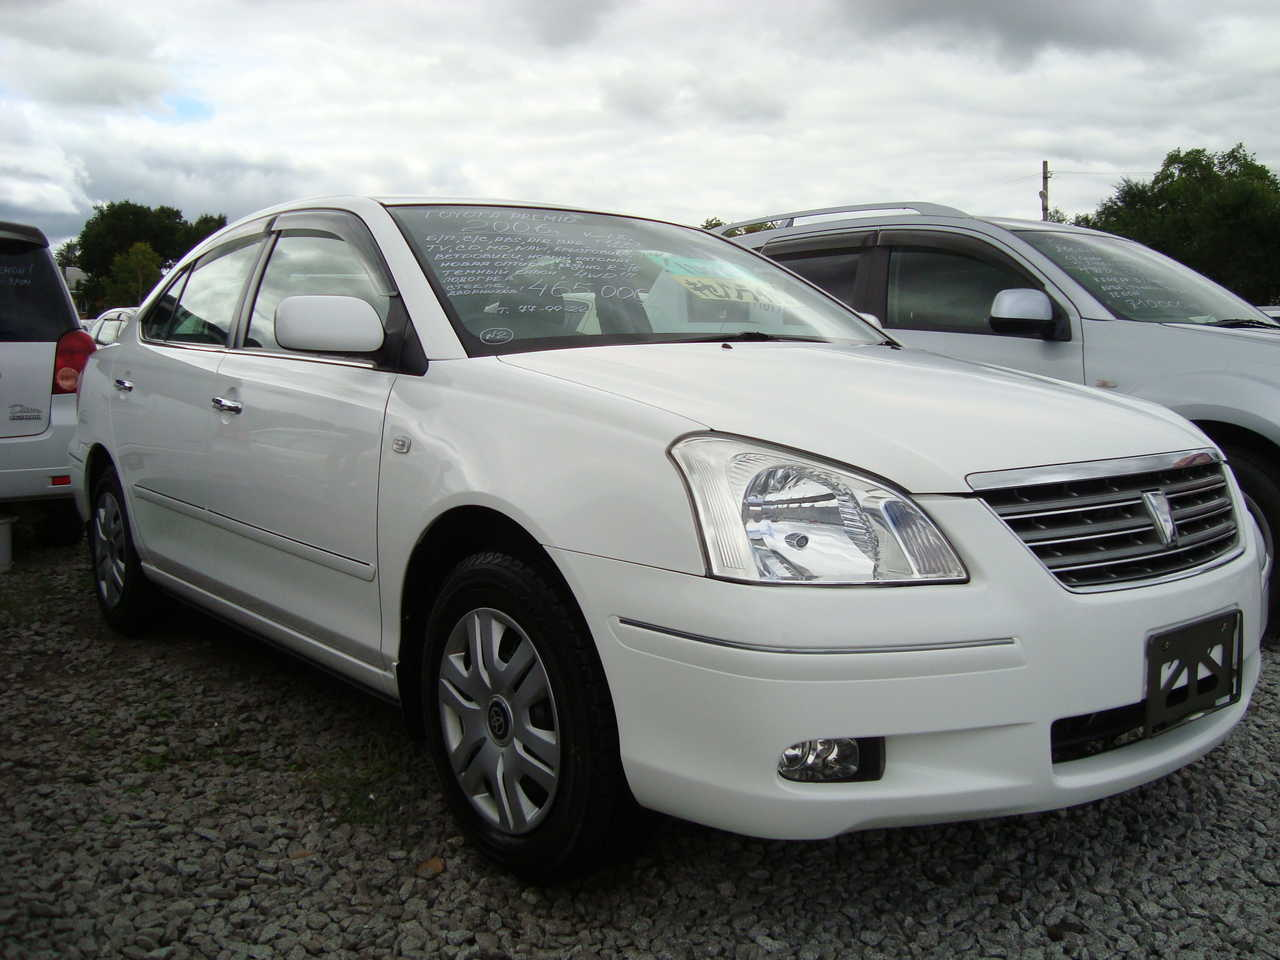 Used 2006 Toyota Premio Photos 1800cc Gasoline